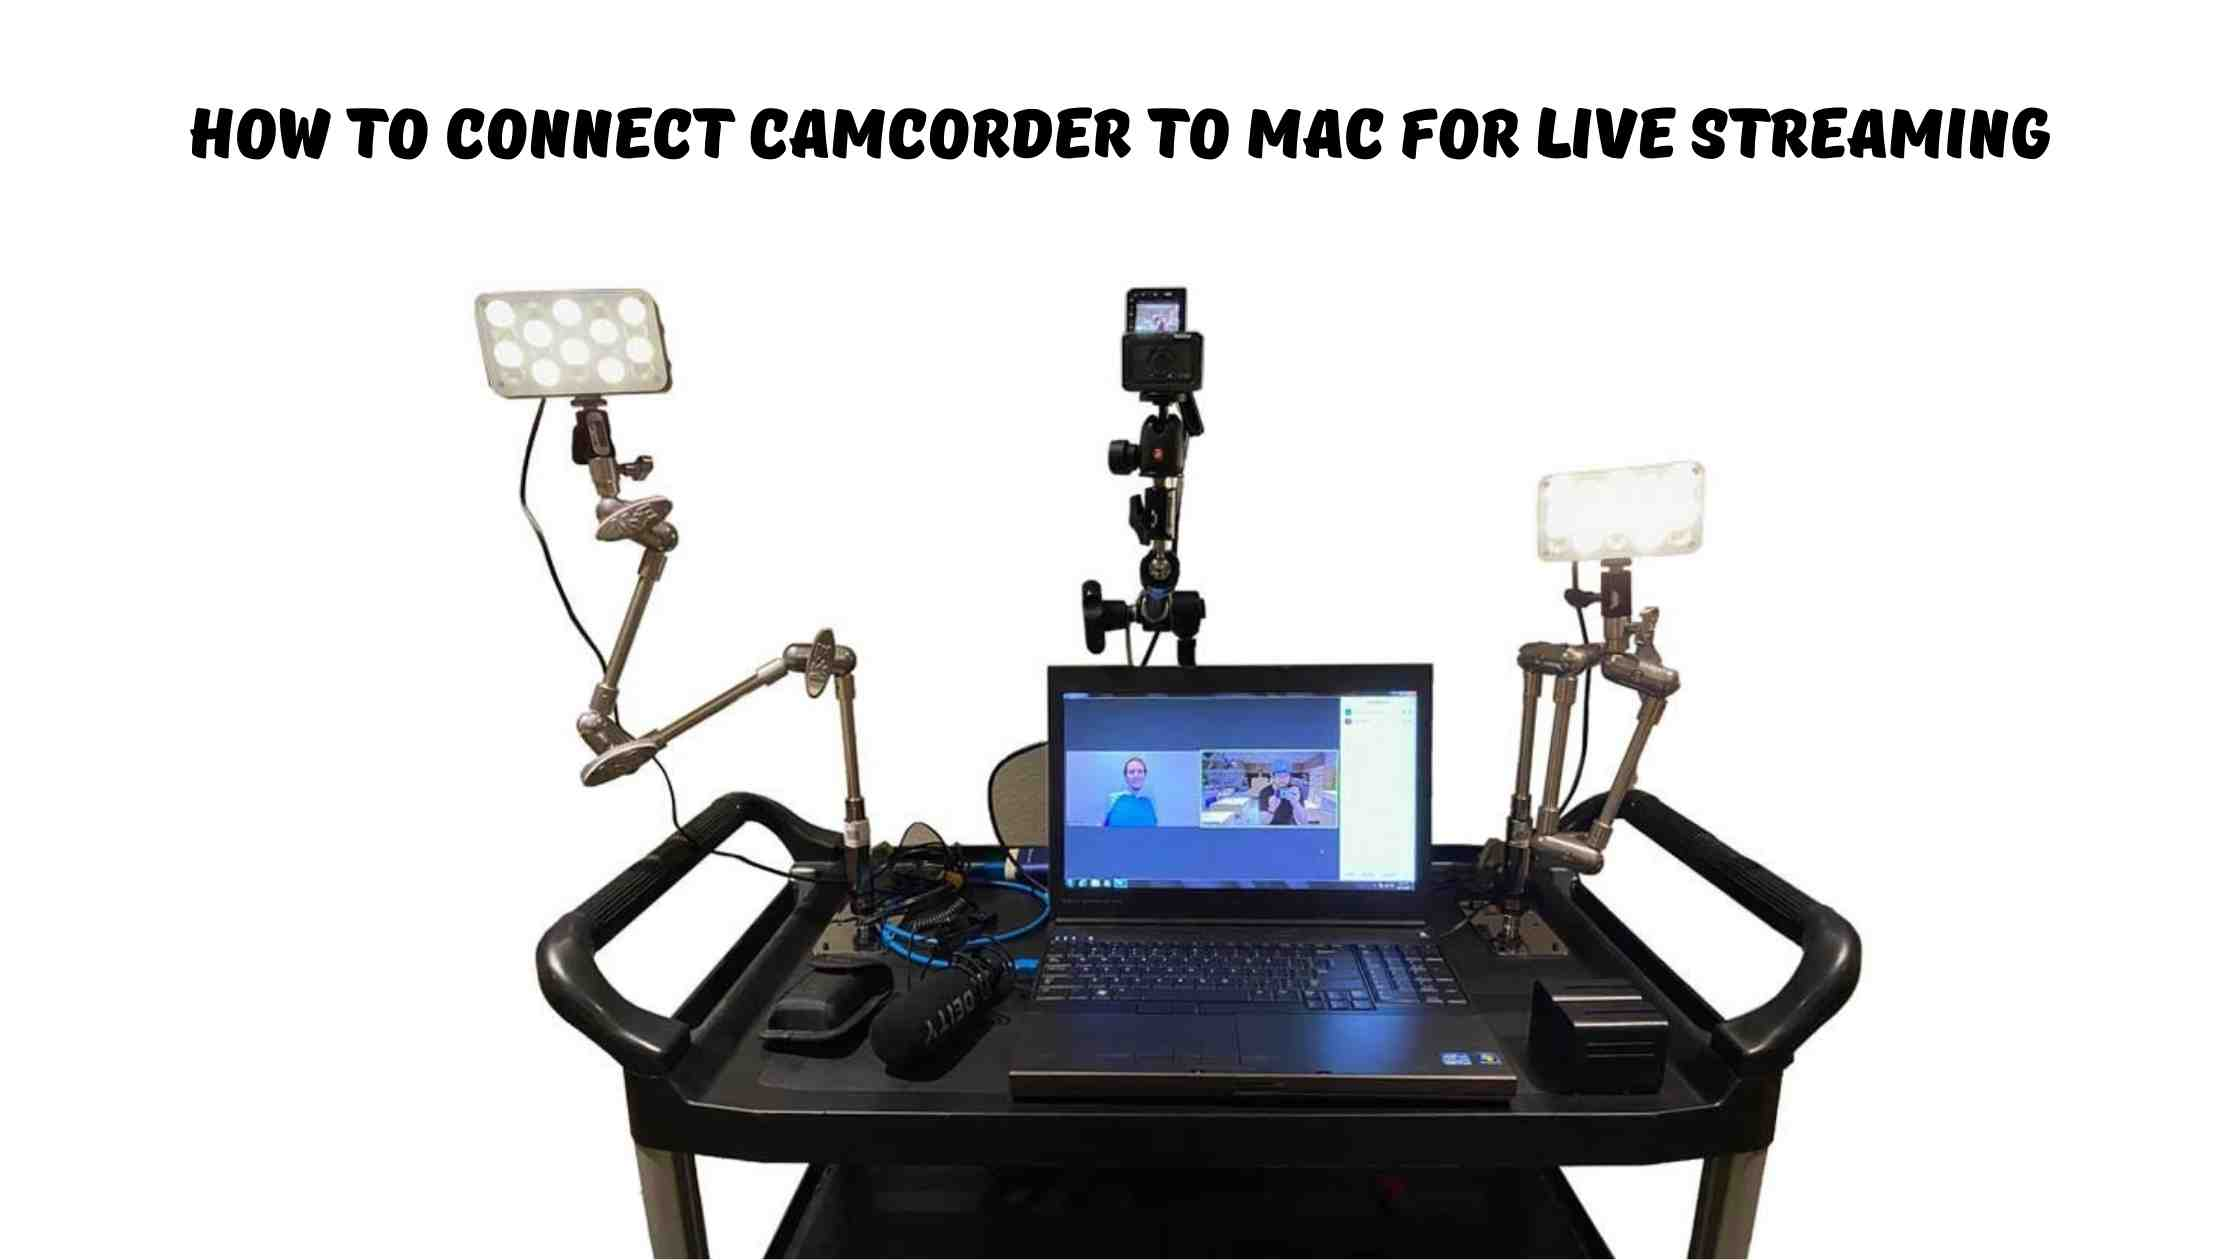 How To Connect Camcorder To Mac For Live Streaming